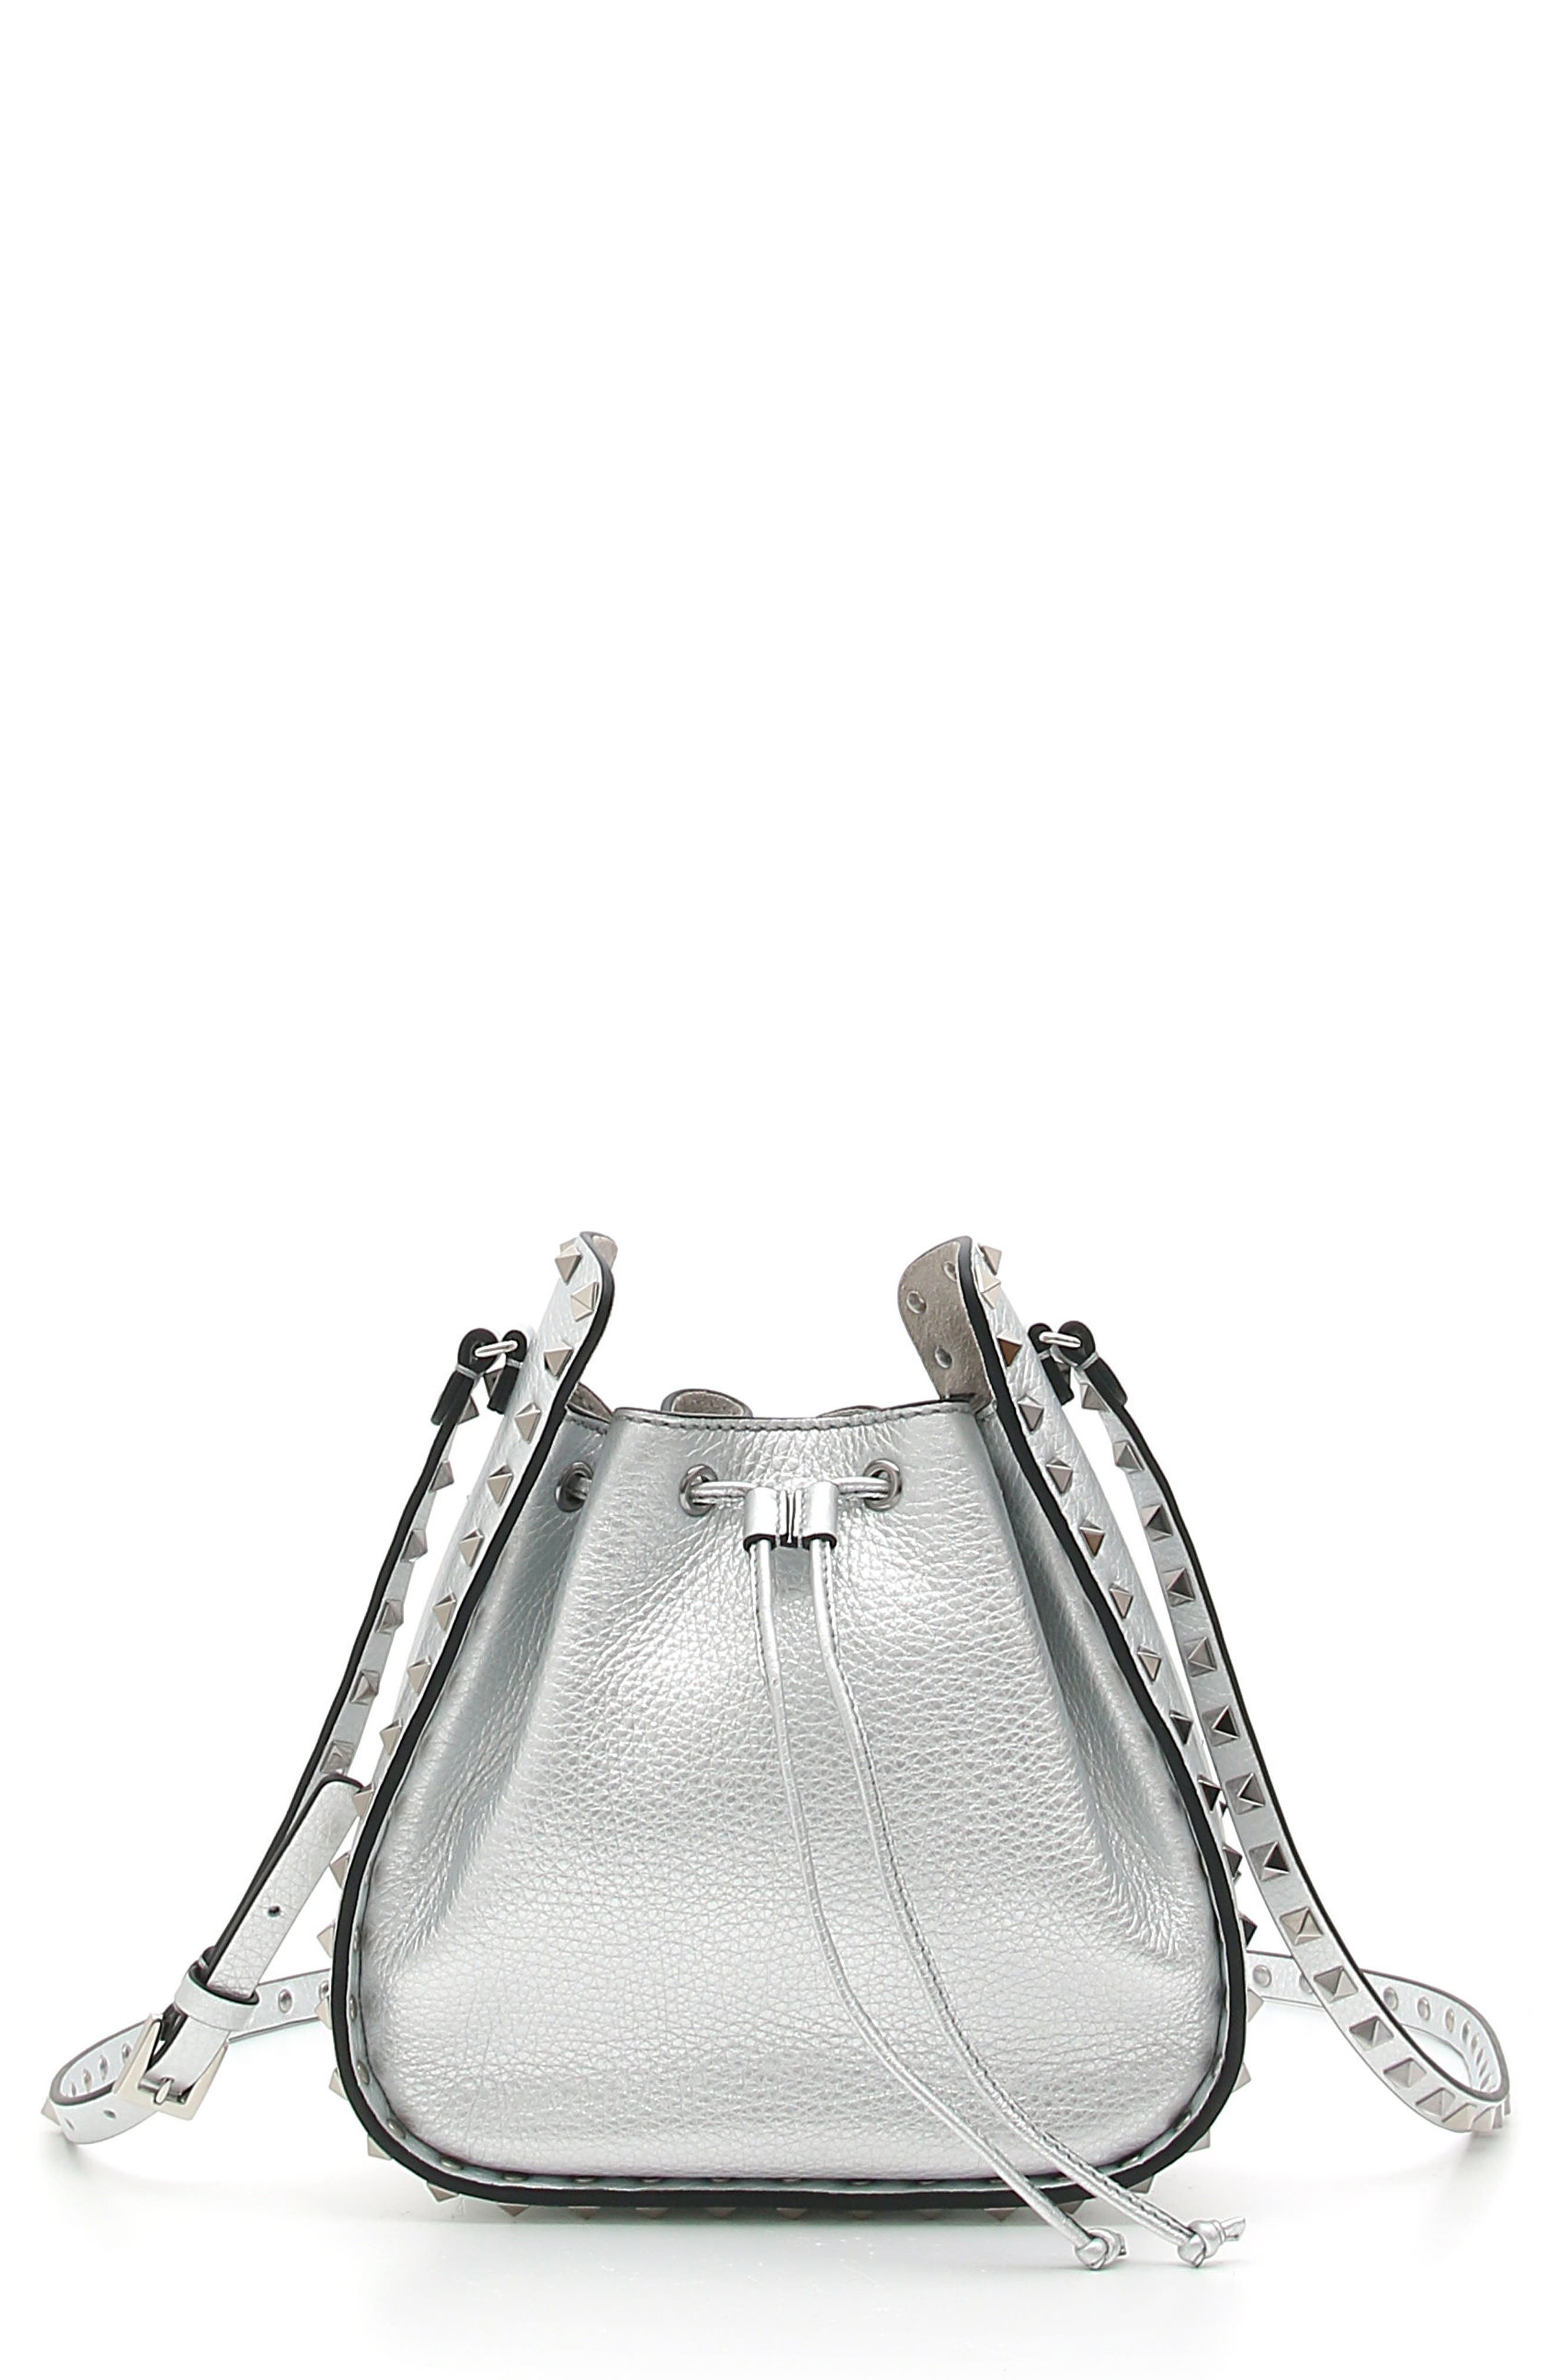 Rockstud Metallic Leather Bucket Bag,                             Main thumbnail 1, color,                             Silver